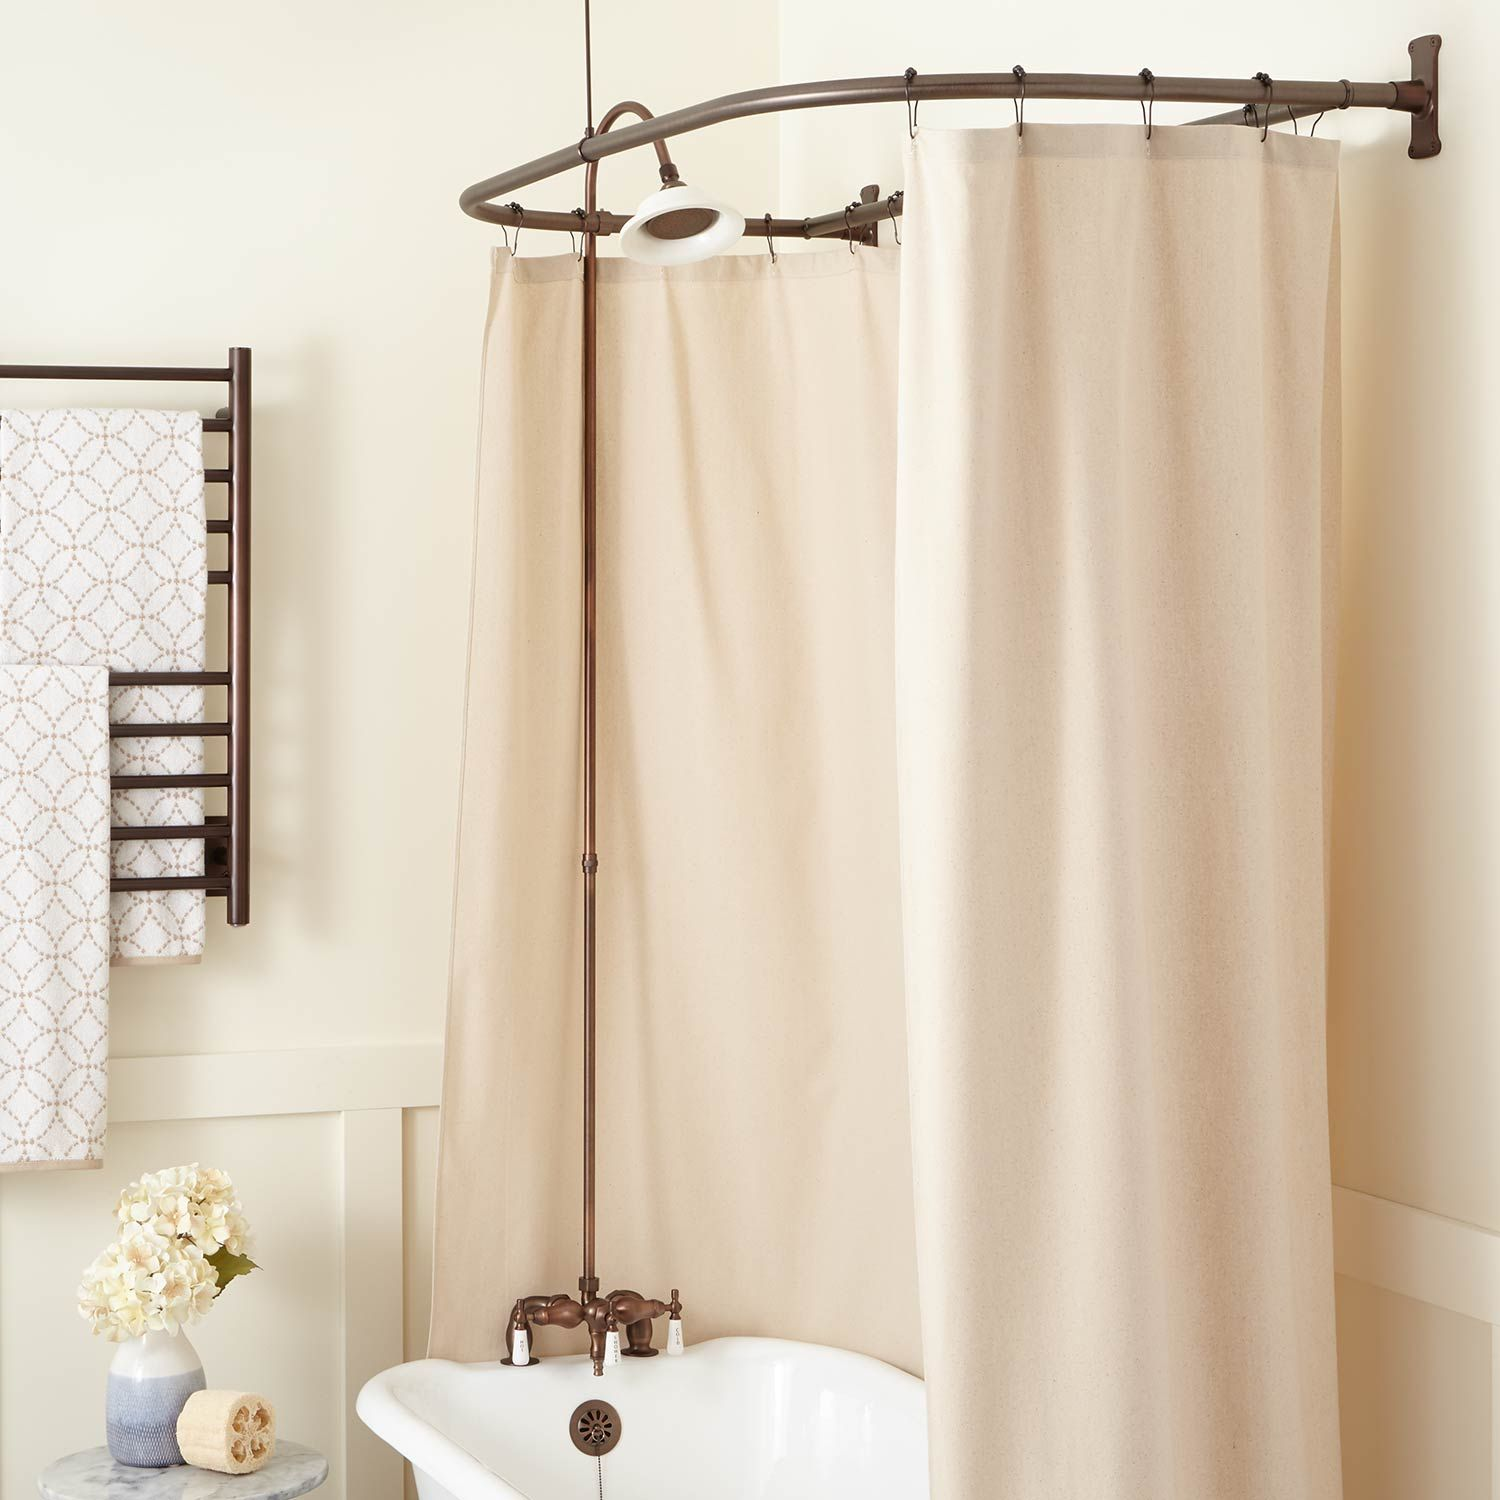 Rim Mount Clawfoot Tub Shower Kit In Porcelain Head In 54 X 27 D Shower Ring In Rings In Nickel Brass Signature Hardware Clawfoot Tub Shower Shower Curtain Rods Shower Tub